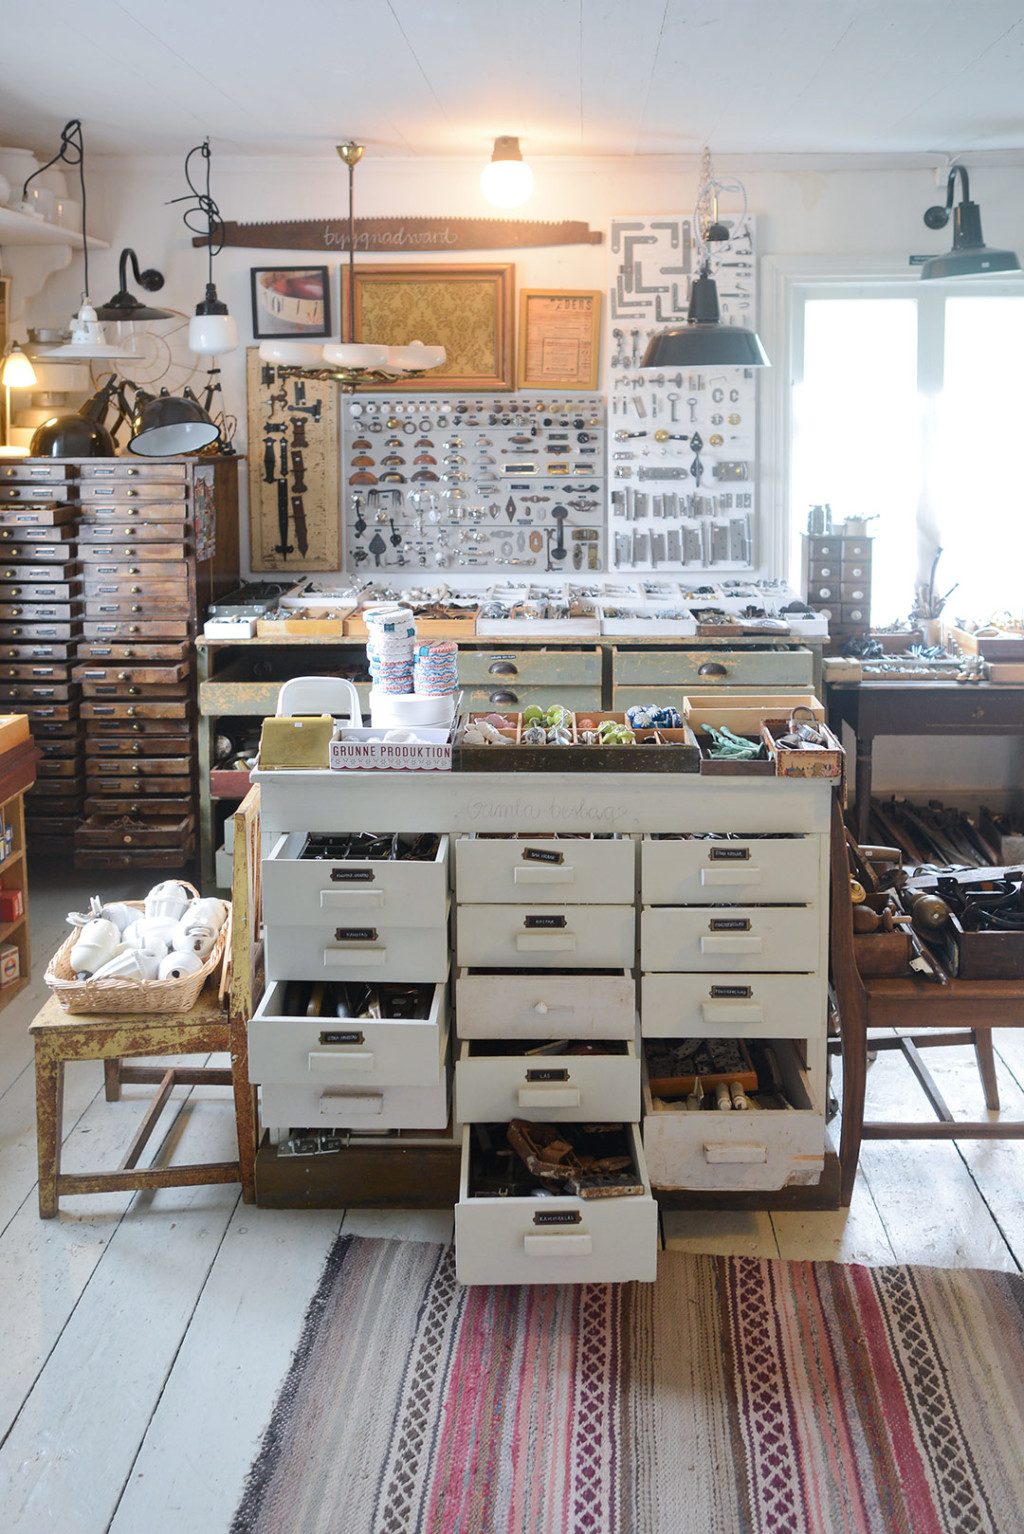 Vintage Treasures at Lundagård